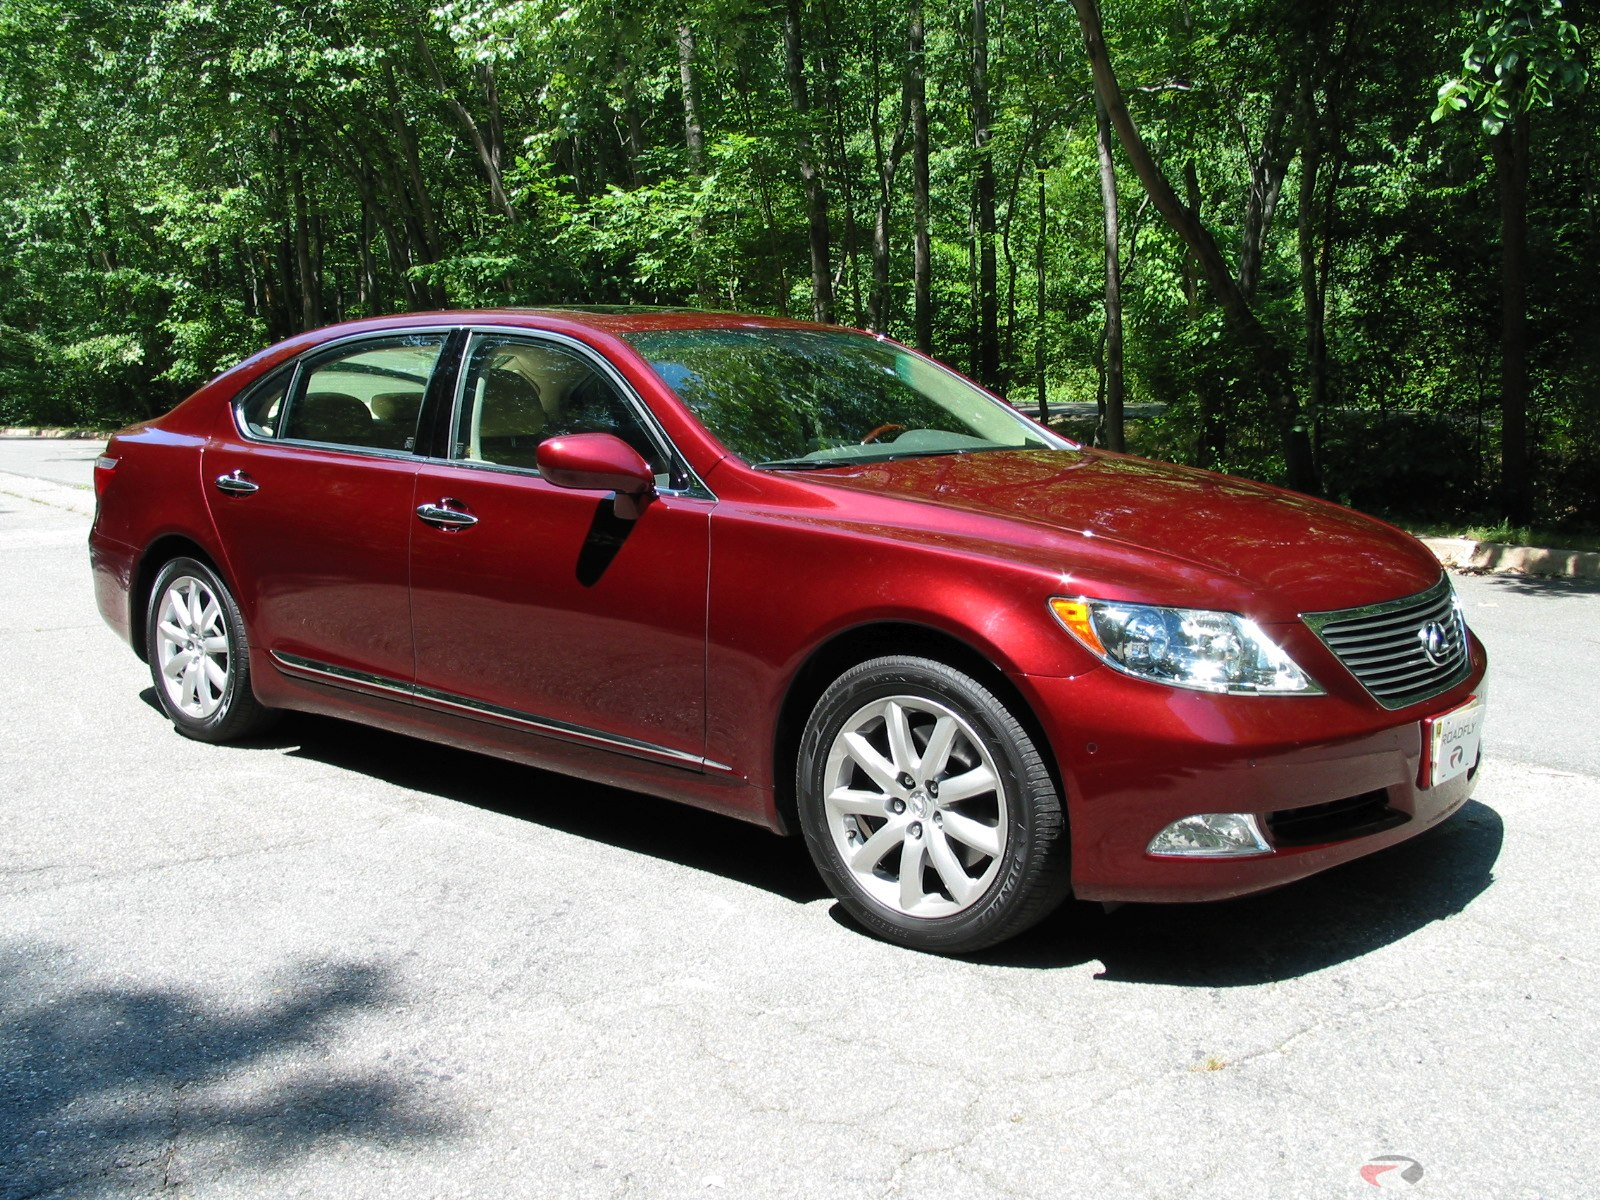 Lexus ls 2007 photo - 3